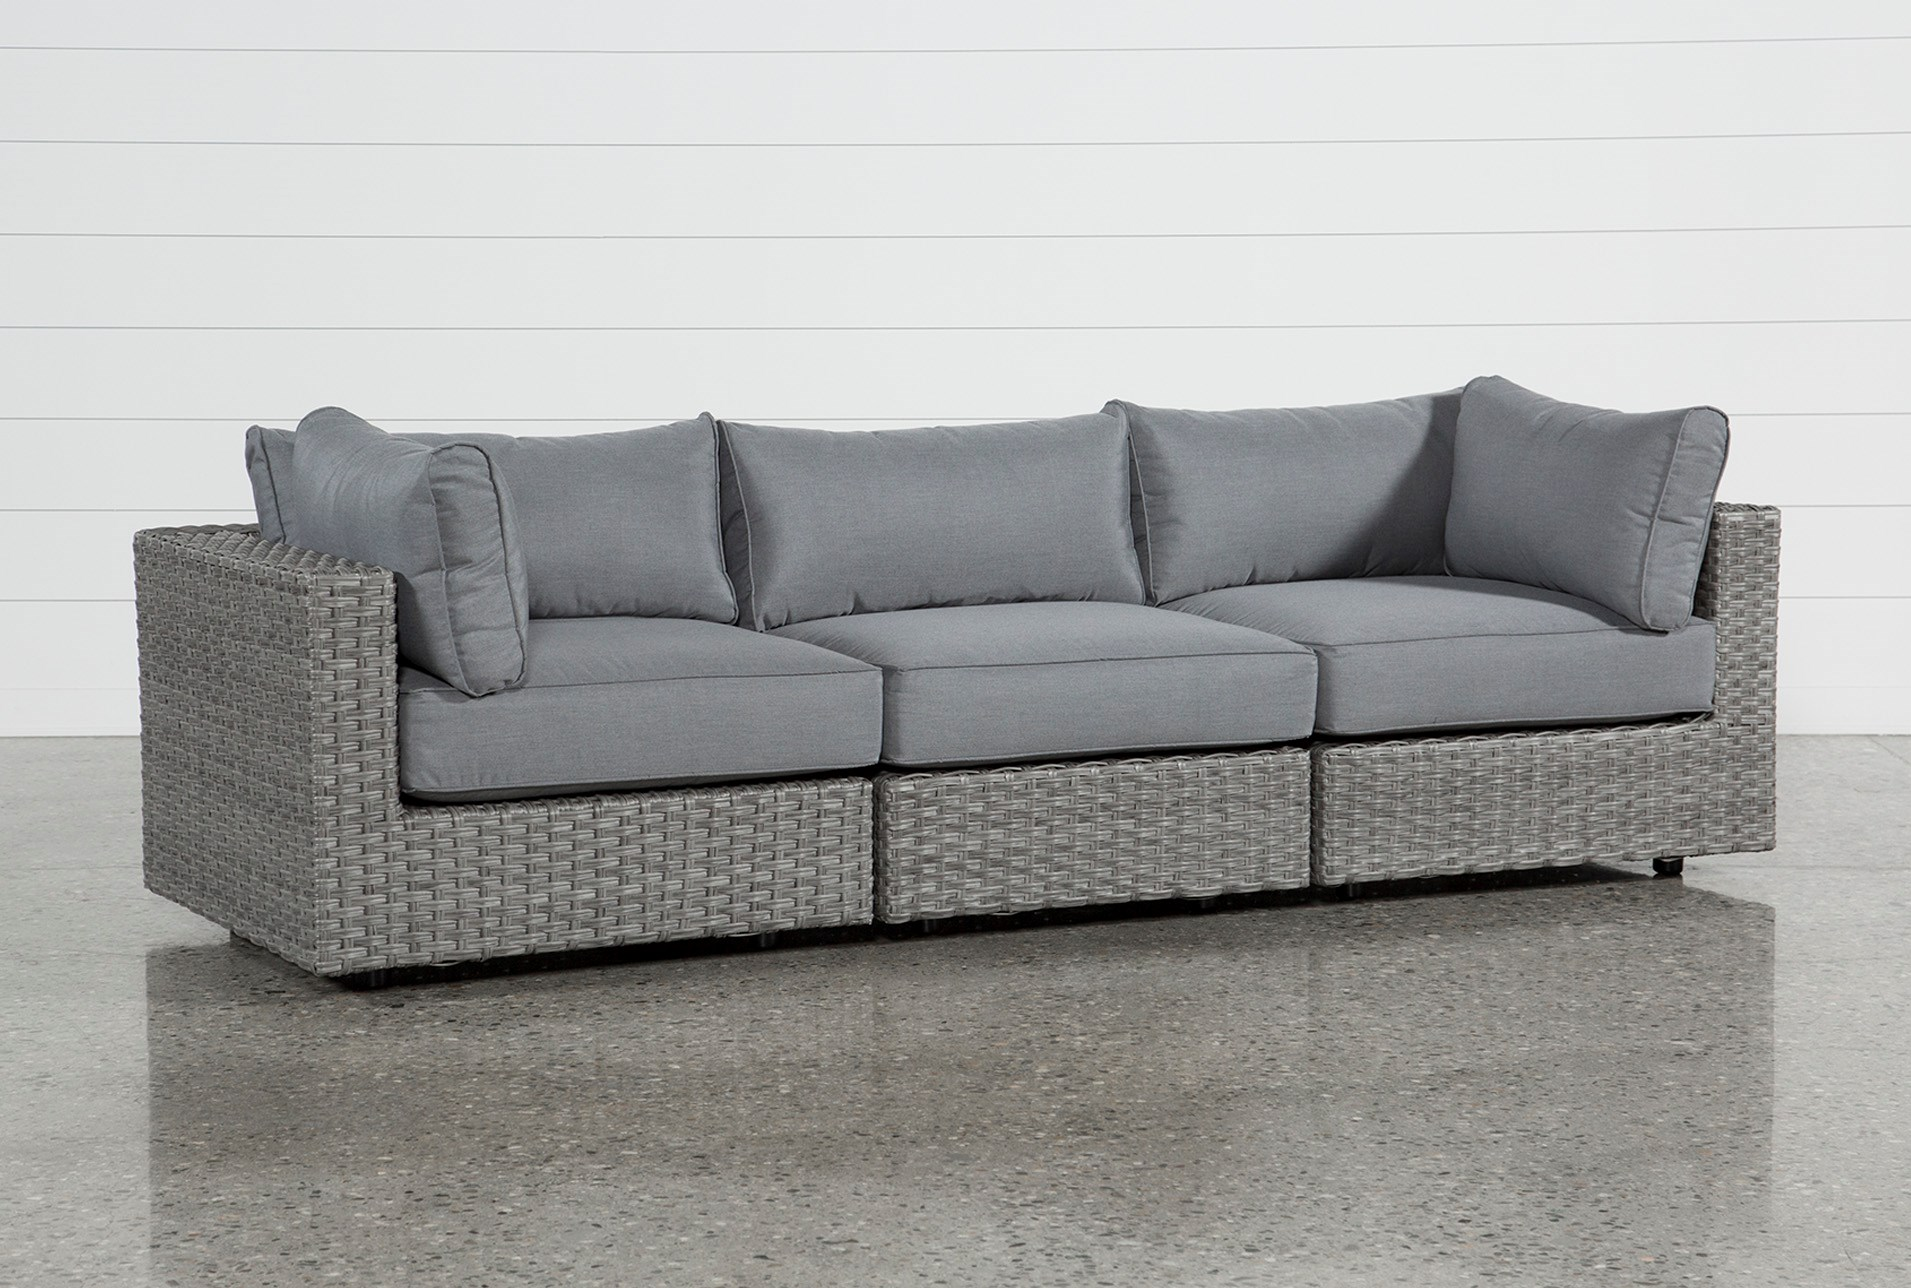 round most sectional couches for wicker comfortable sectionals couch anadolukardiyolderg on sofa outdoor trendy sale loveseats surprising modular furniture seating patio